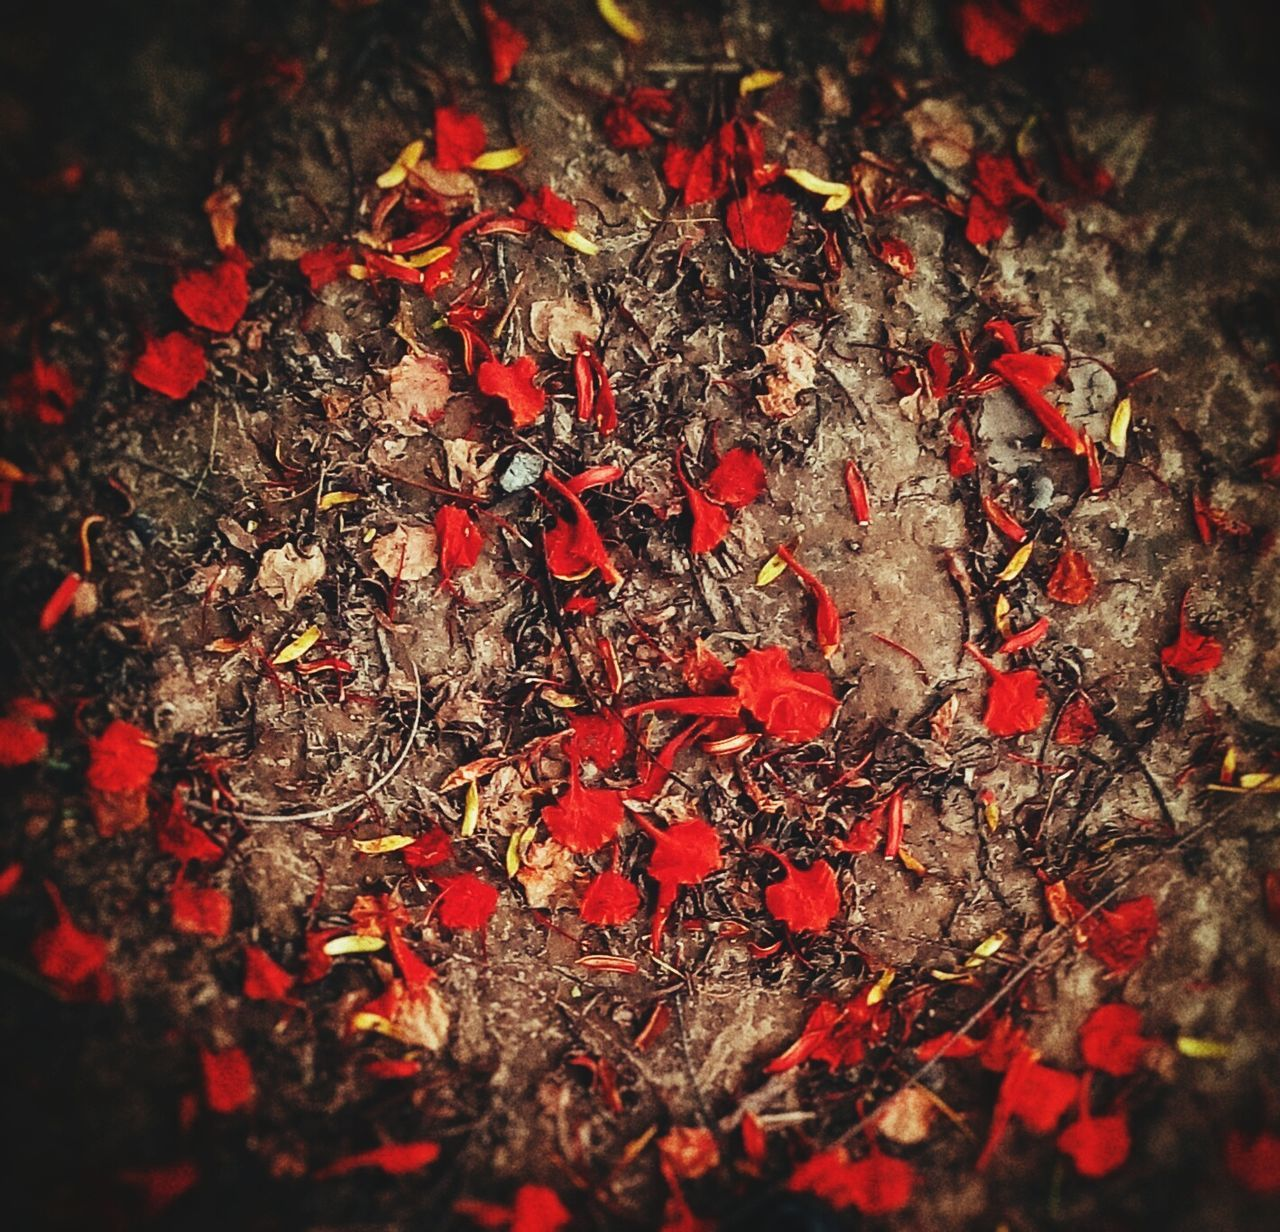 red, autumn, no people, nature, change, leaf, outdoors, close-up, day